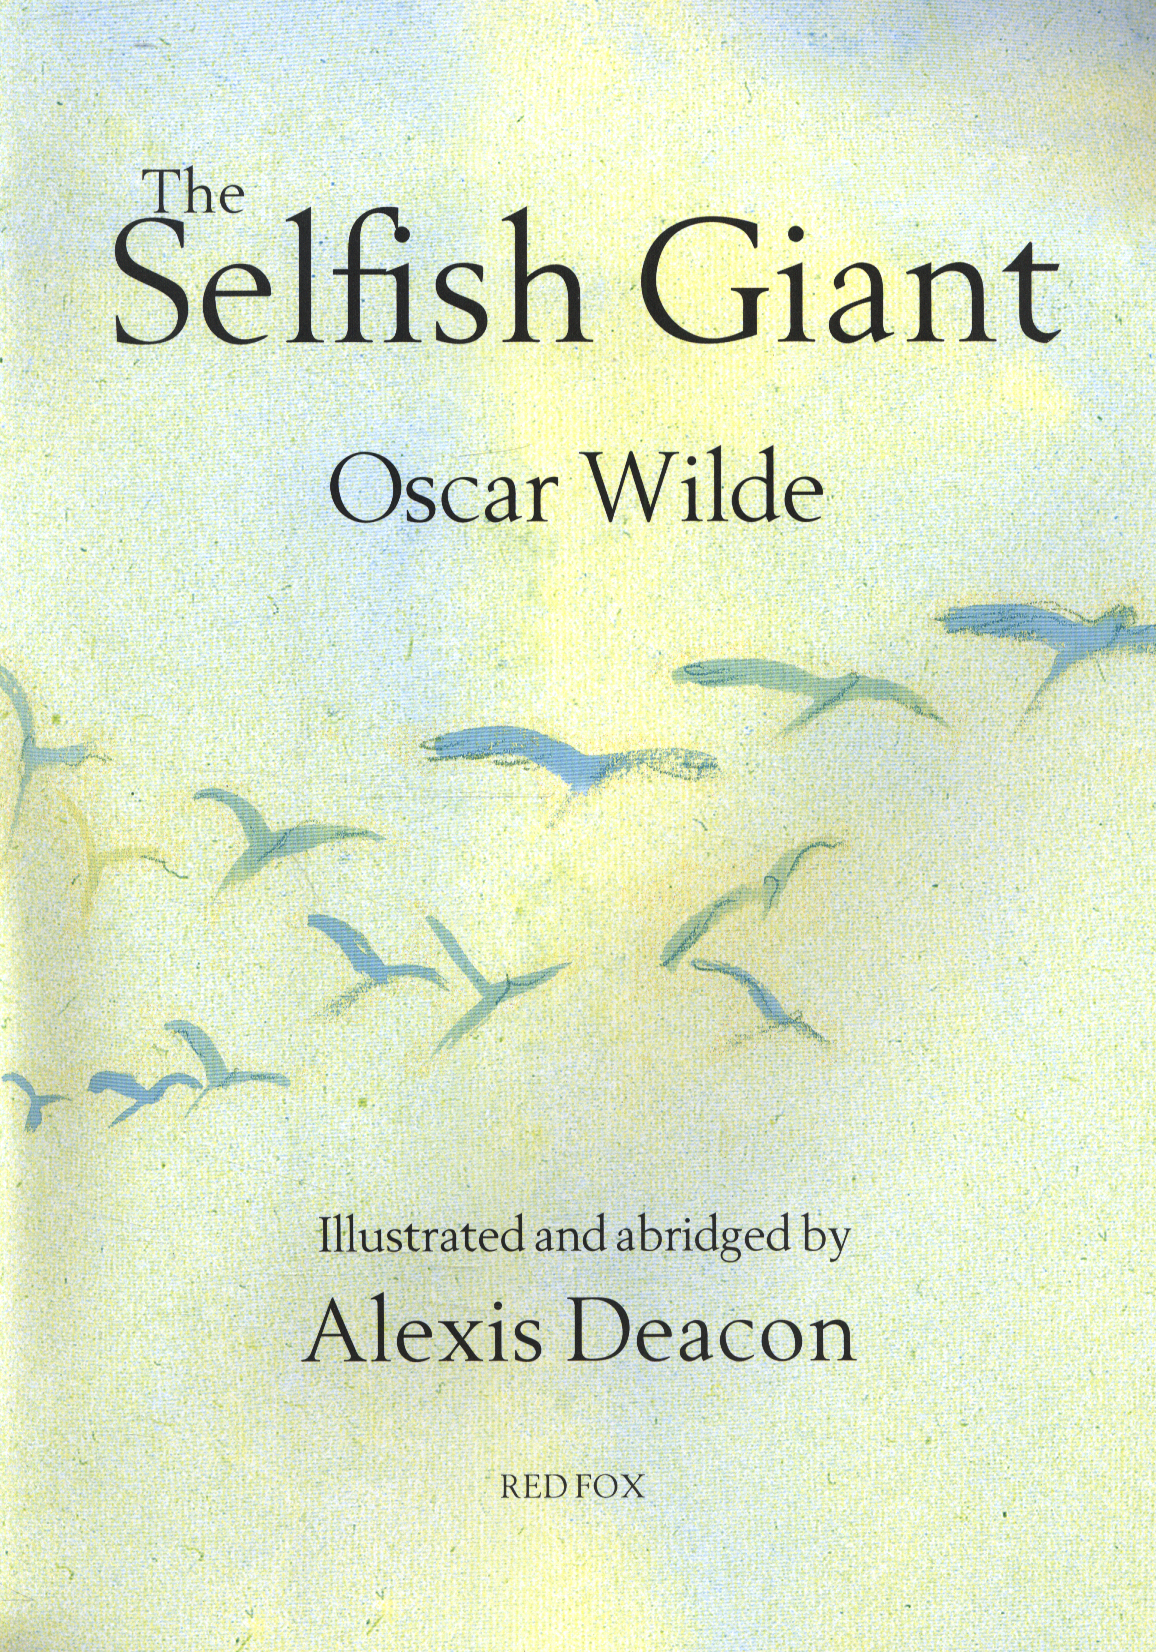 oscar wilde selfish giant The giant felt guilty about his selfish behavior, and was very sorry for what he had done i should have let the children play in my garden, he thought to himself the giant was indeed very sorry and he decided to help the small boy.